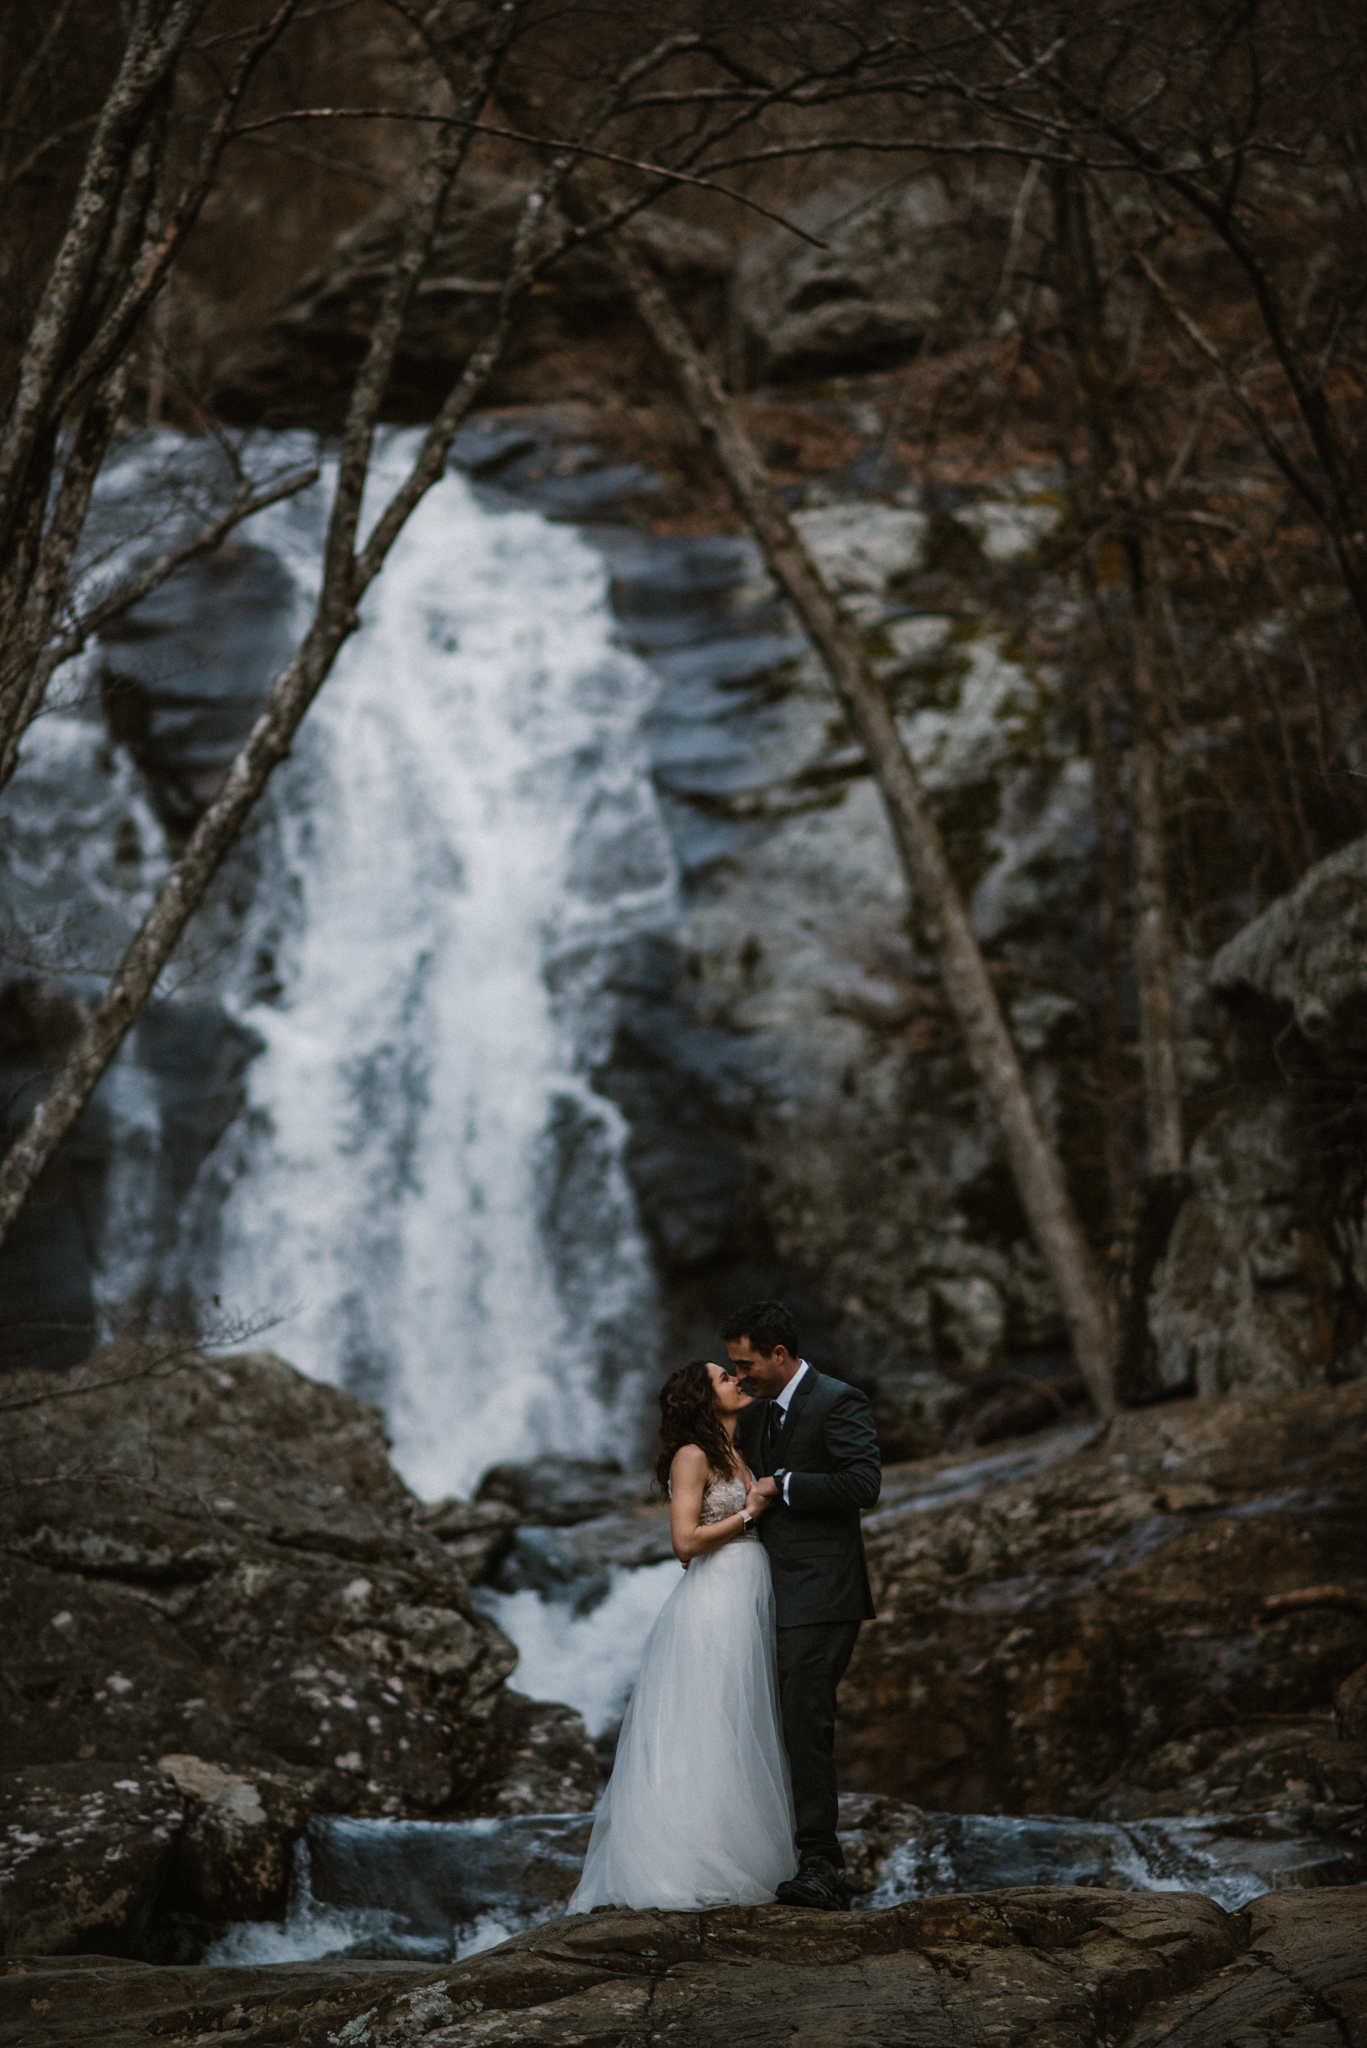 Stephanie and Steve - Shenandoah National Park Elopement - Sunrise Hiking Elopement - Adventurous Elopement - Virginia Elopement Photographer - Shenandoah national Park Wedding Photographer - White Sails Creative_12.jpg